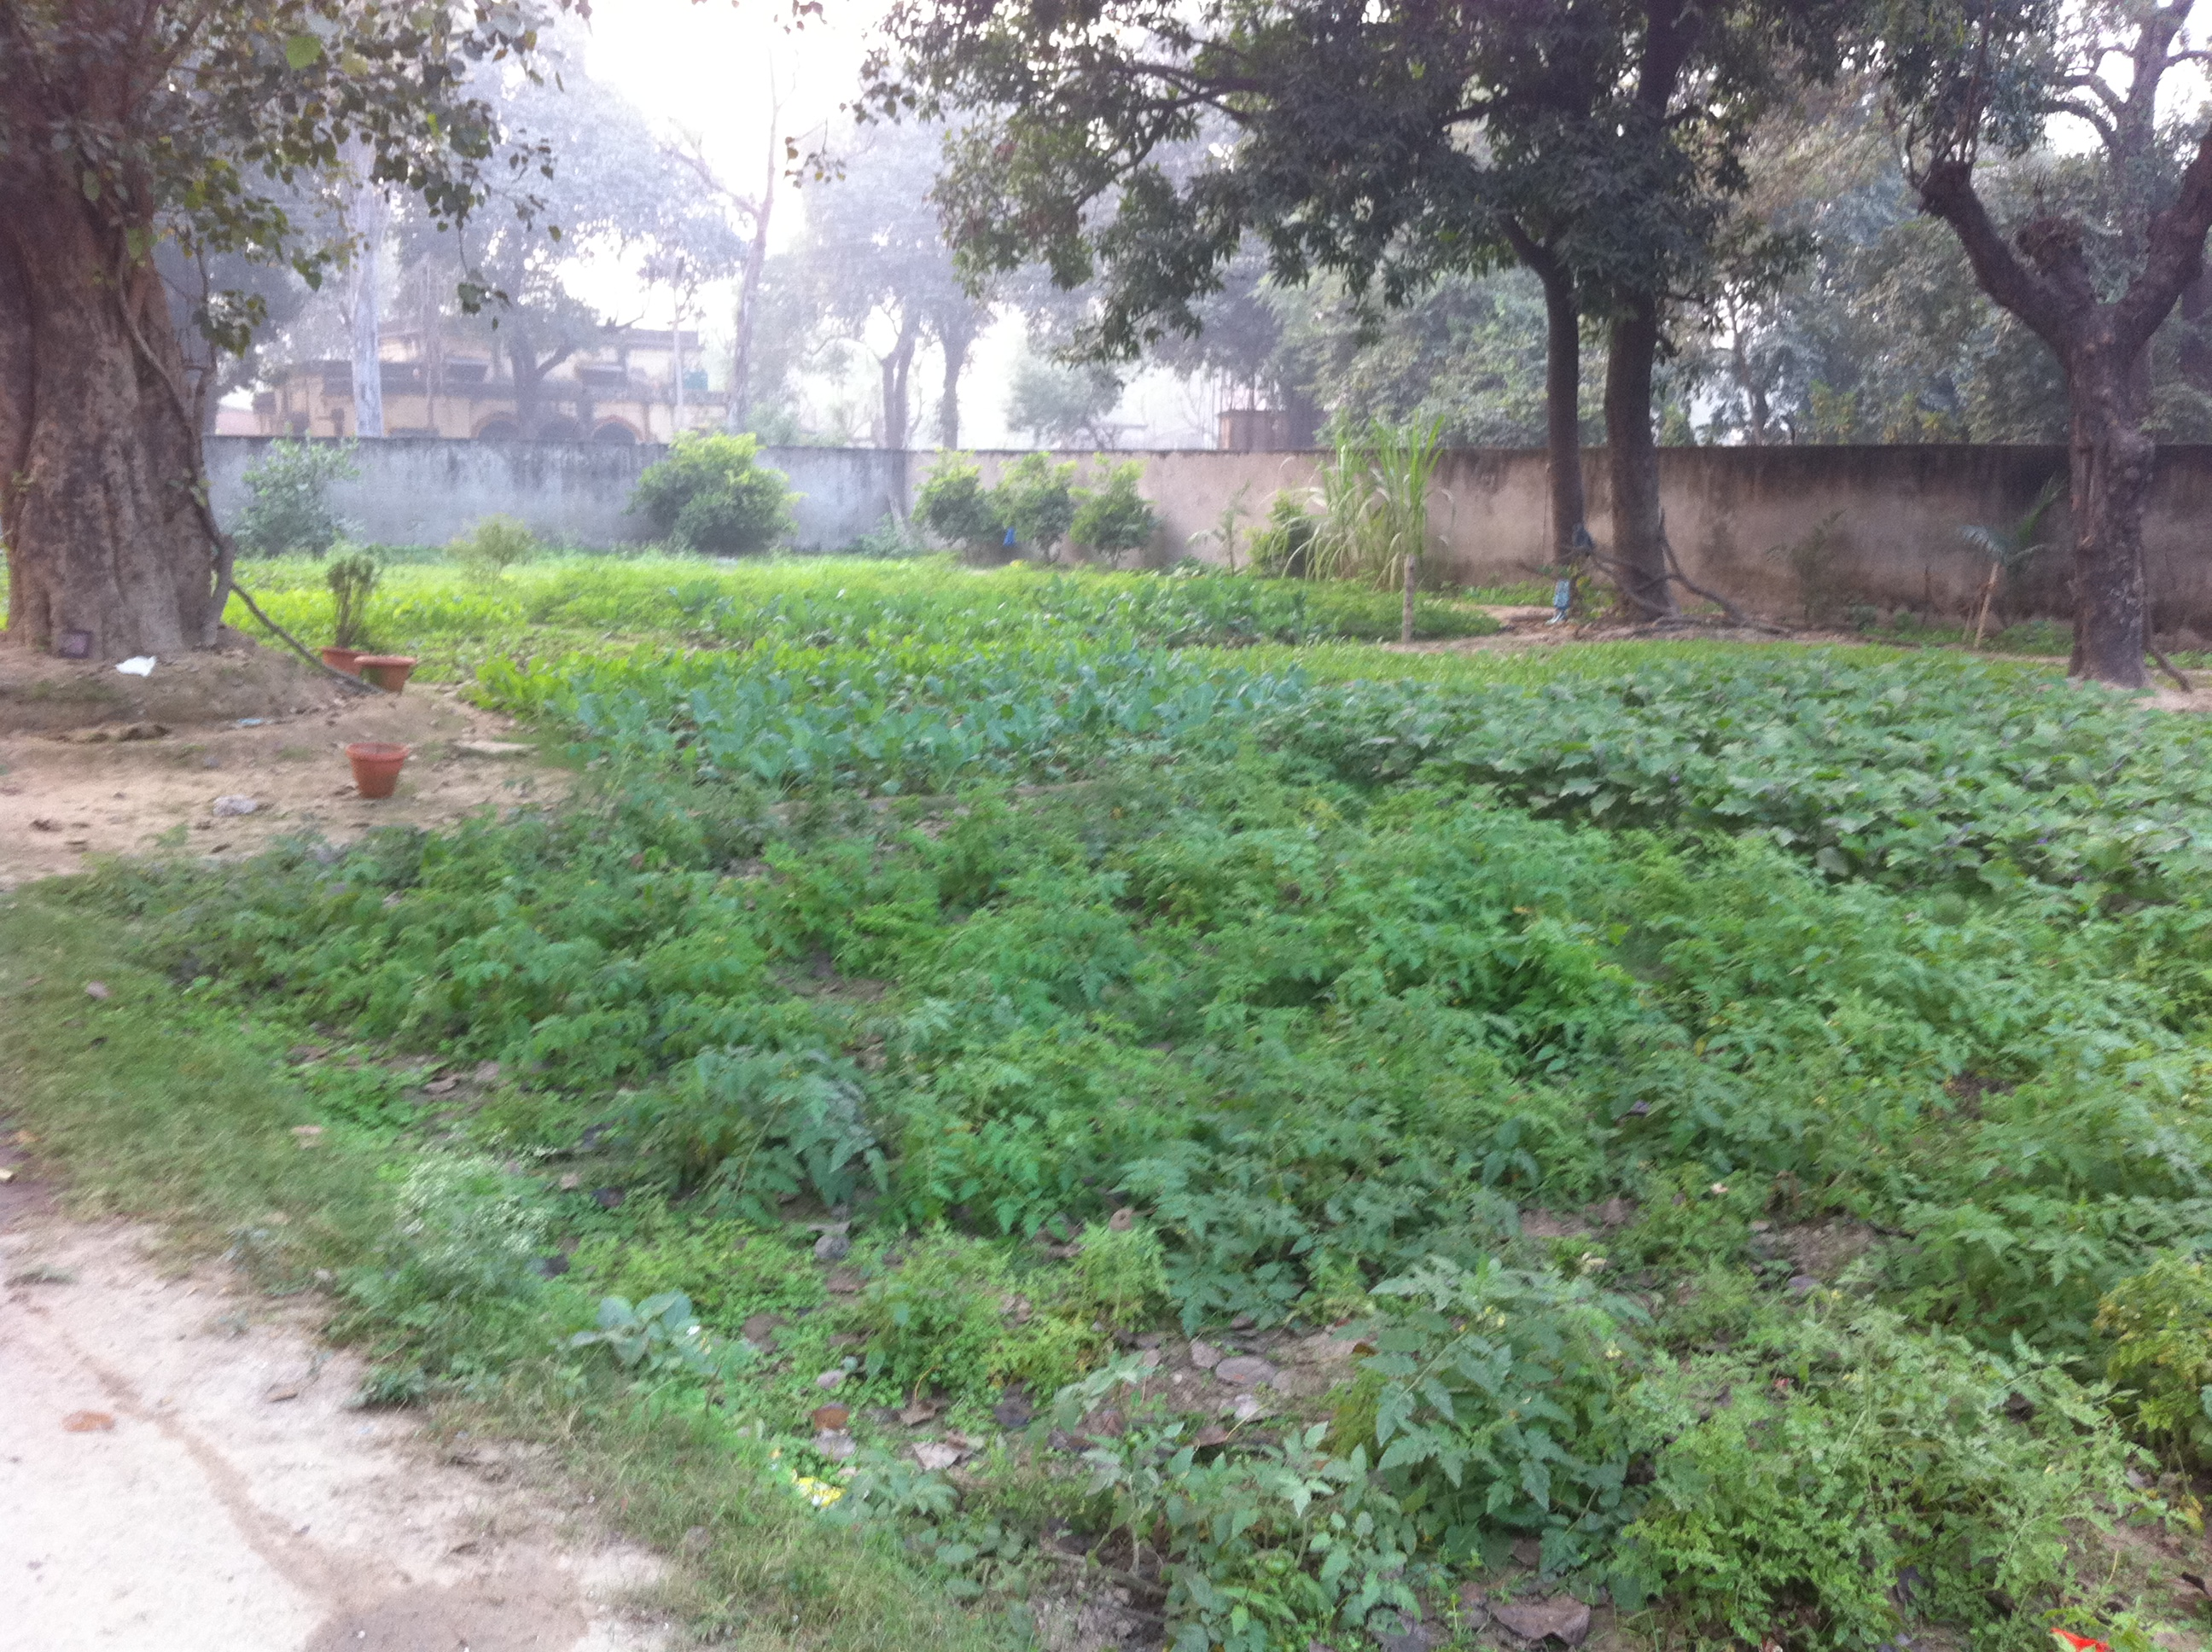 Photo of the extensive vegetable garden at our Lucknow Home